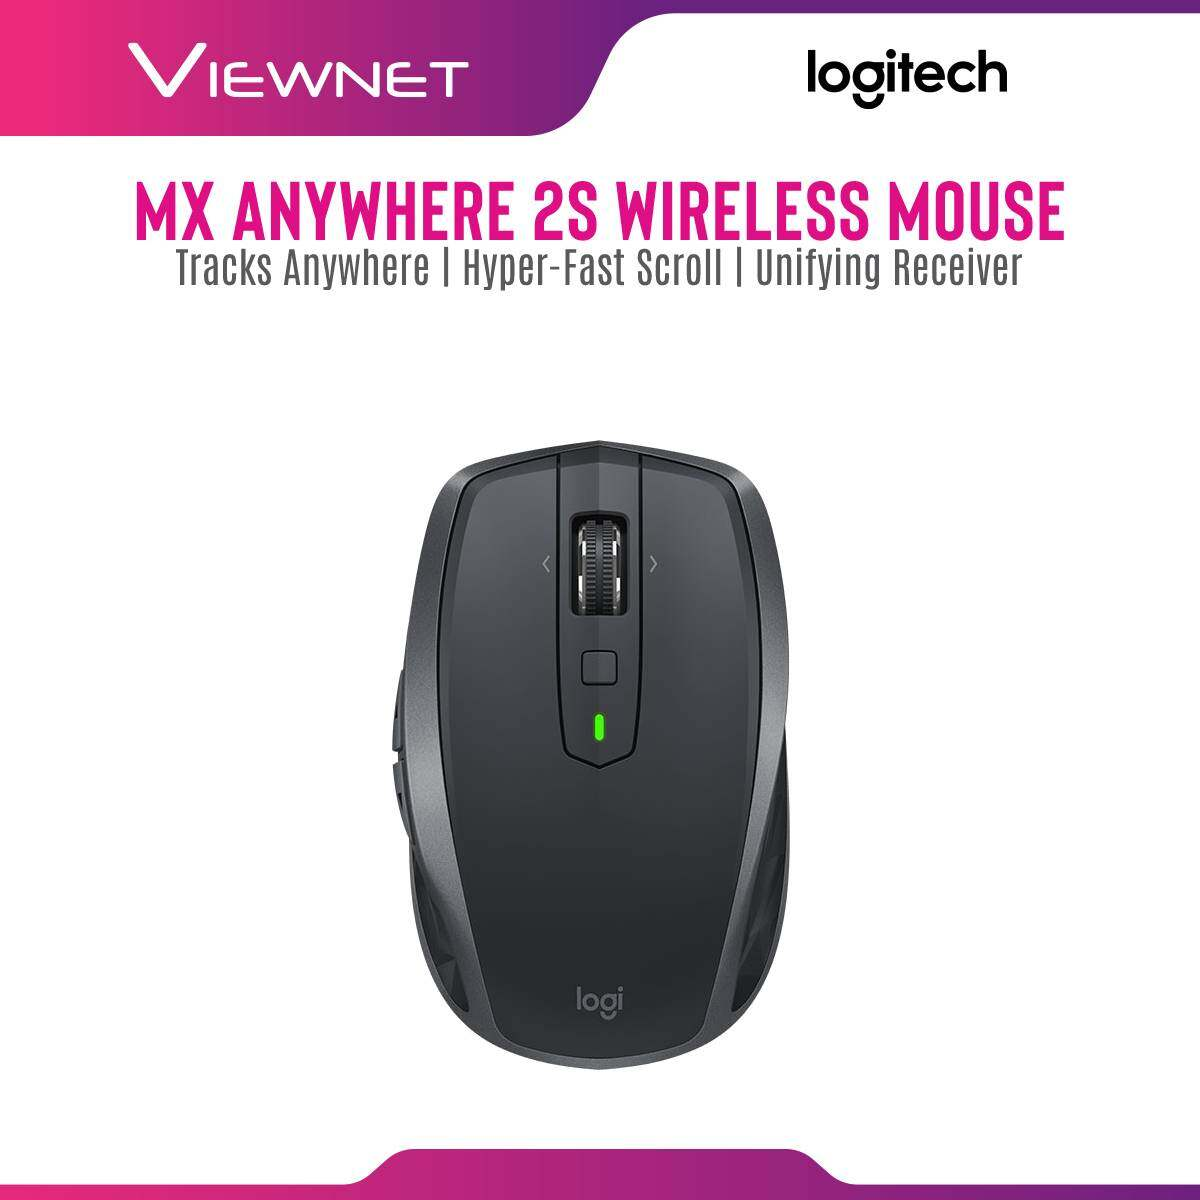 Logitech MX Anywhere 2S Wireless Mouse (910-005156)